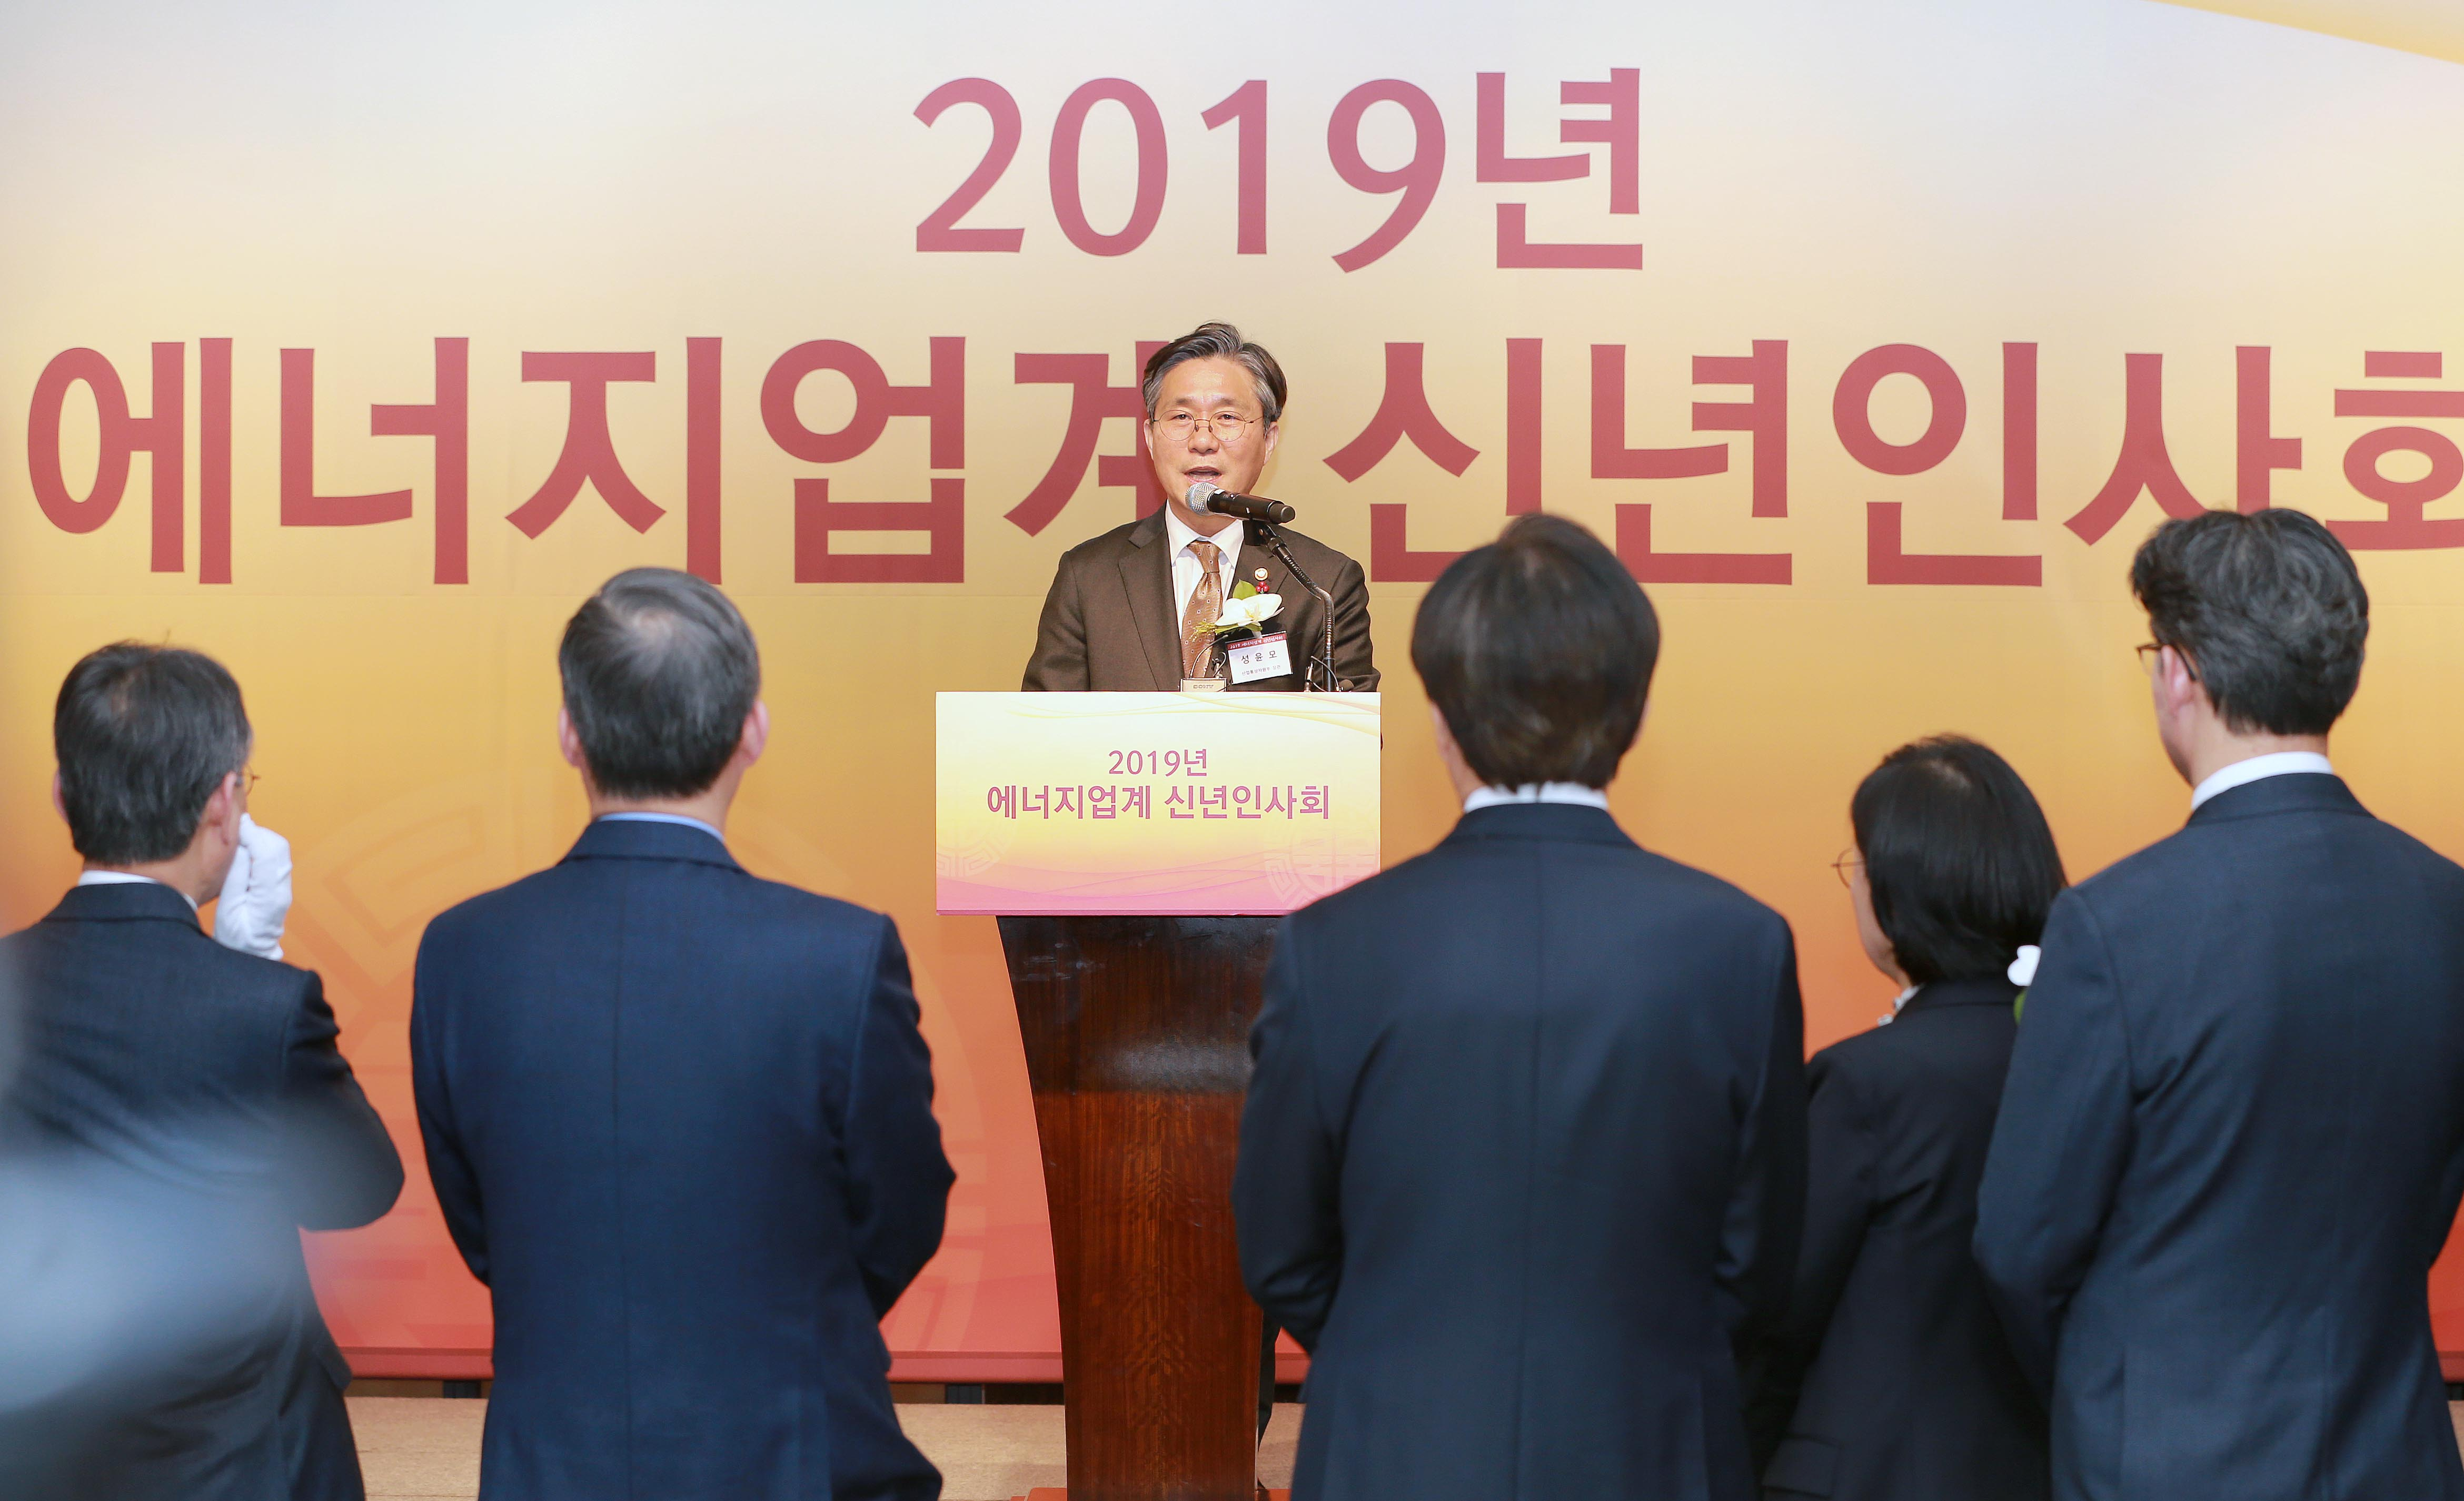 Minister Sung delivers speech to energy industry leaders at New Year's meeting